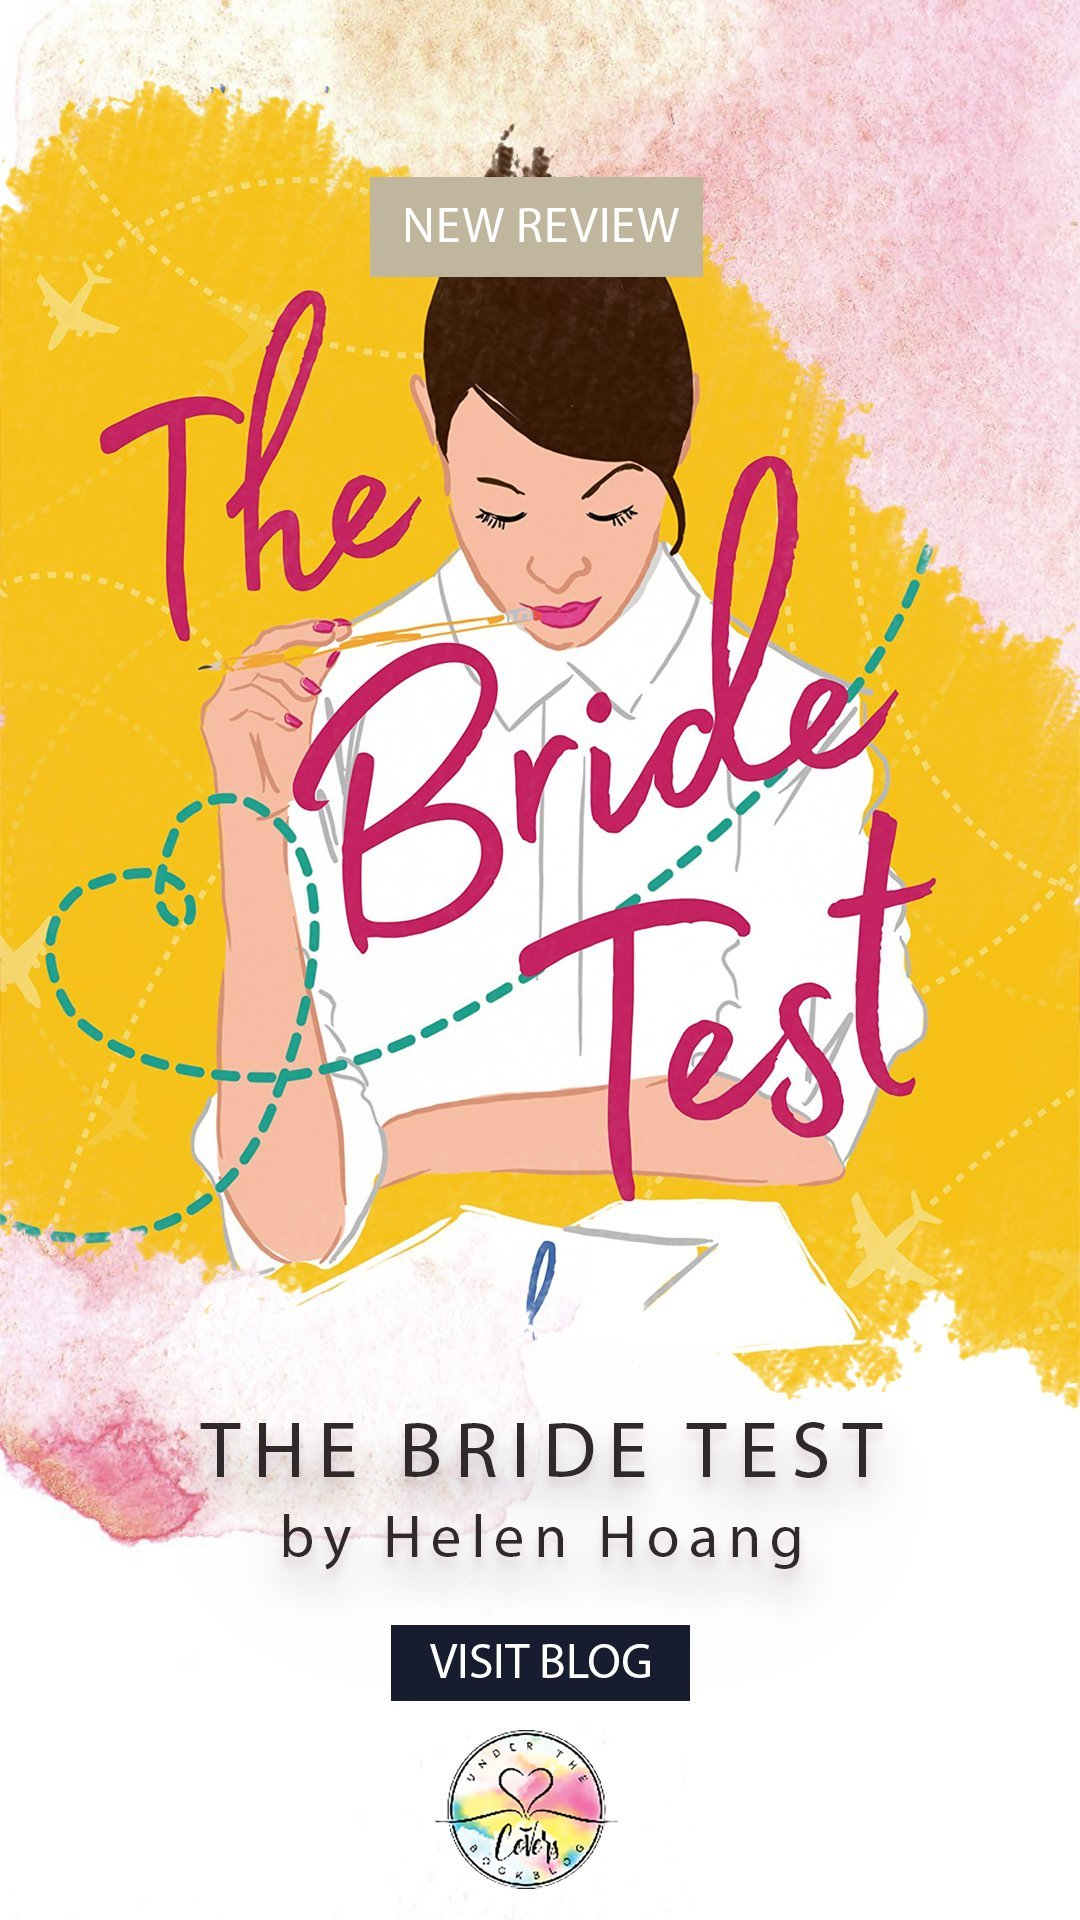 ARC Review: The Bride Test by Helen Hoang